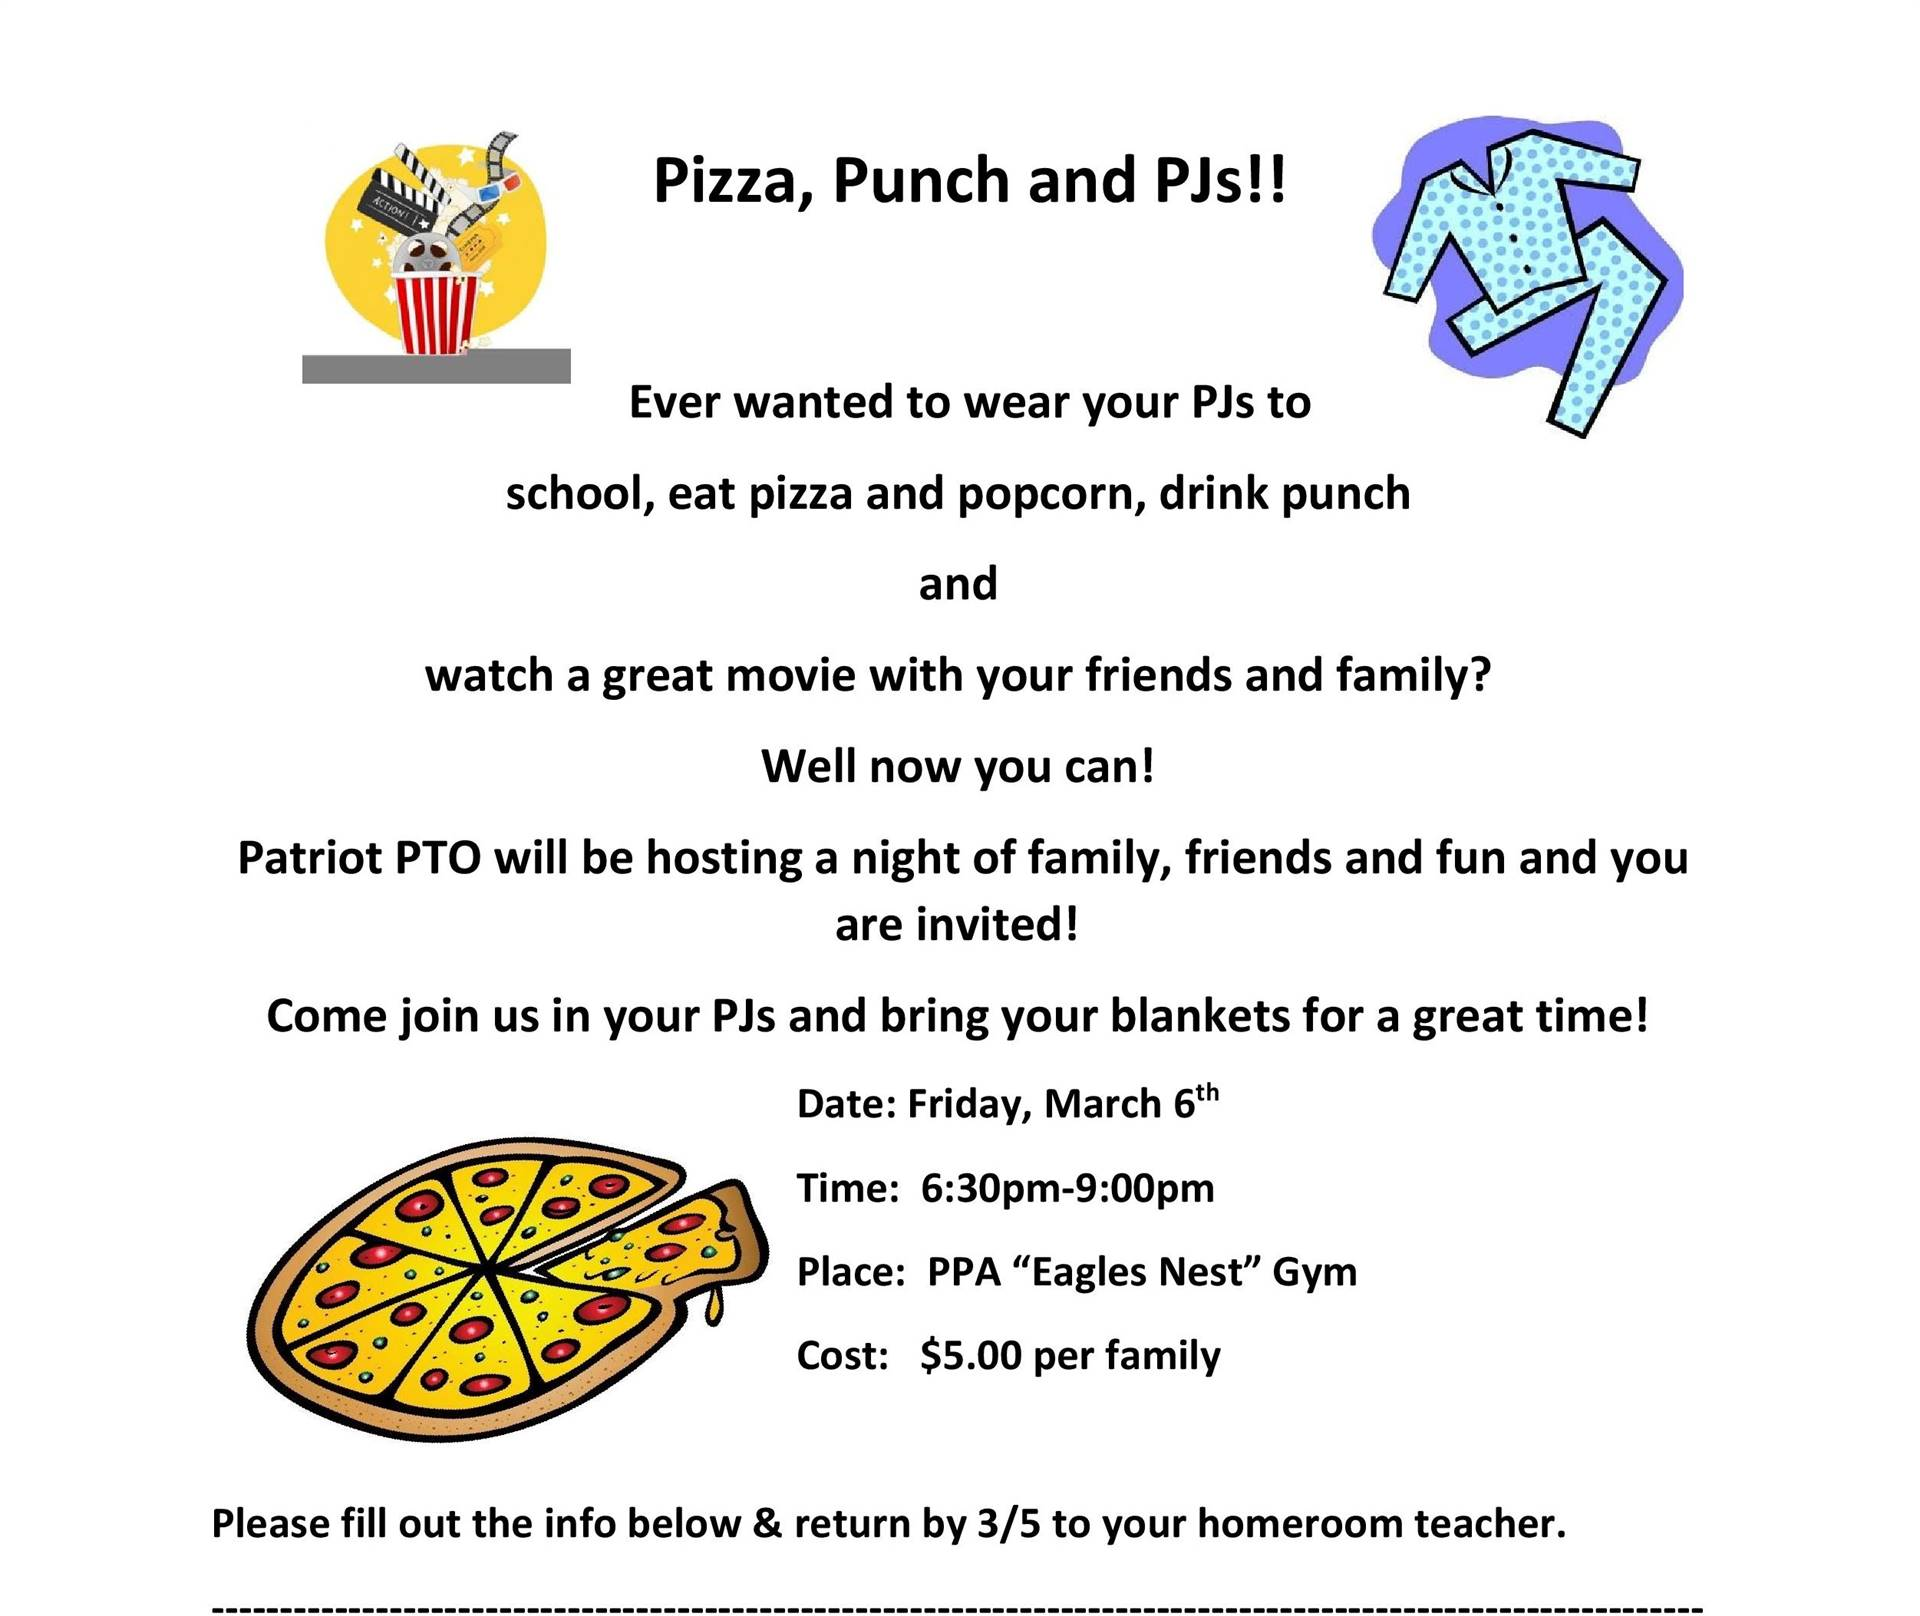 Flyer for pizza, popcorn, and PJs night